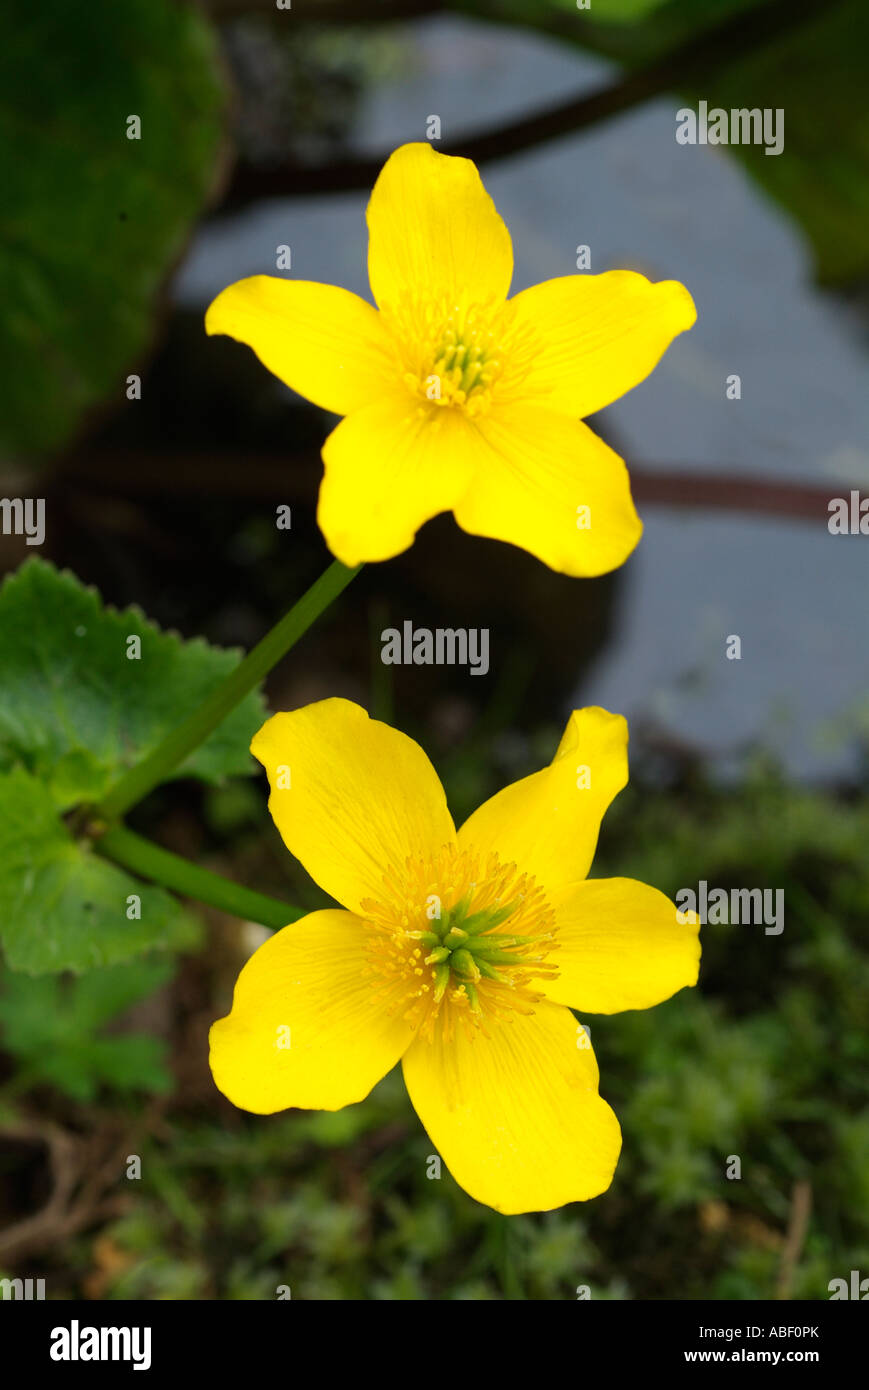 Marsh Marigold Caltha Palustris Yellow fresh Water Kingcup Flower Plant Common Wet Woodlands Marshes Ditches Bright Golden wild Stock Photo